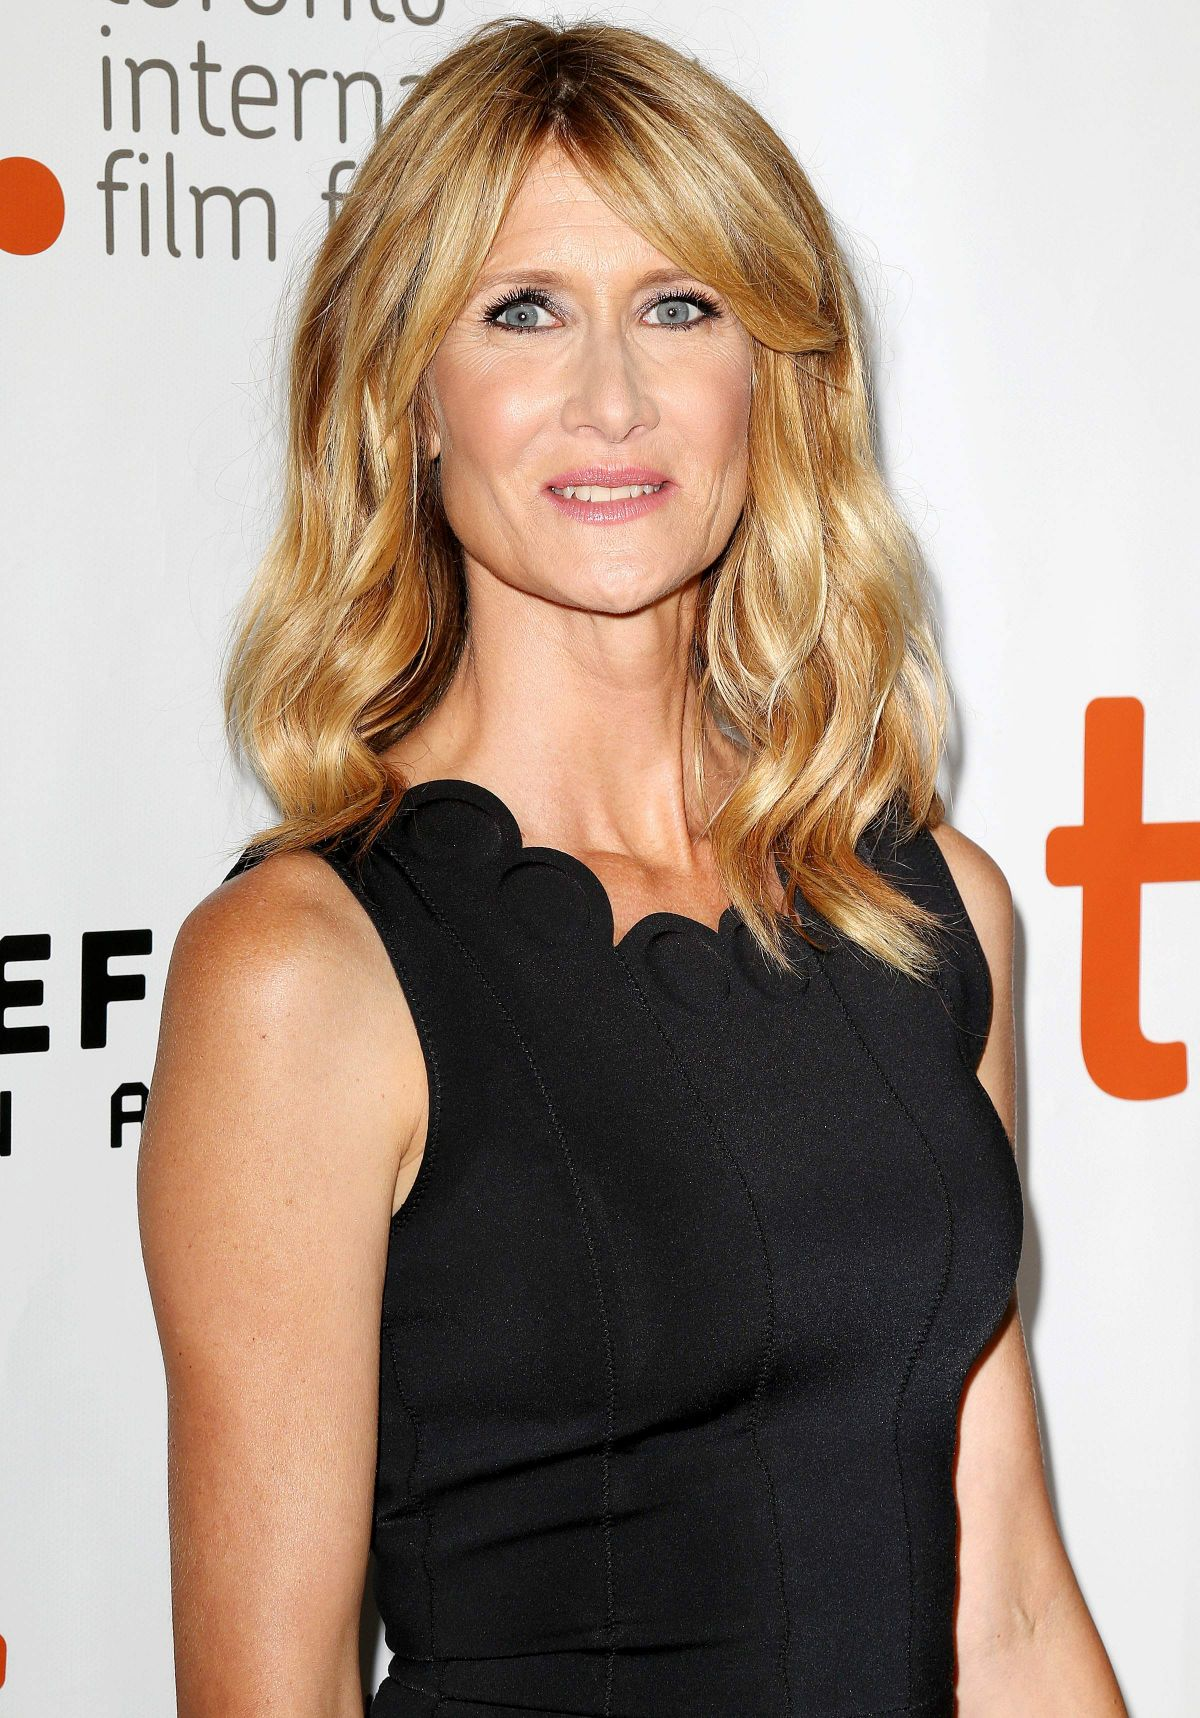 Laura Dern earned a  million dollar salary, leaving the net worth at 12 million in 2017